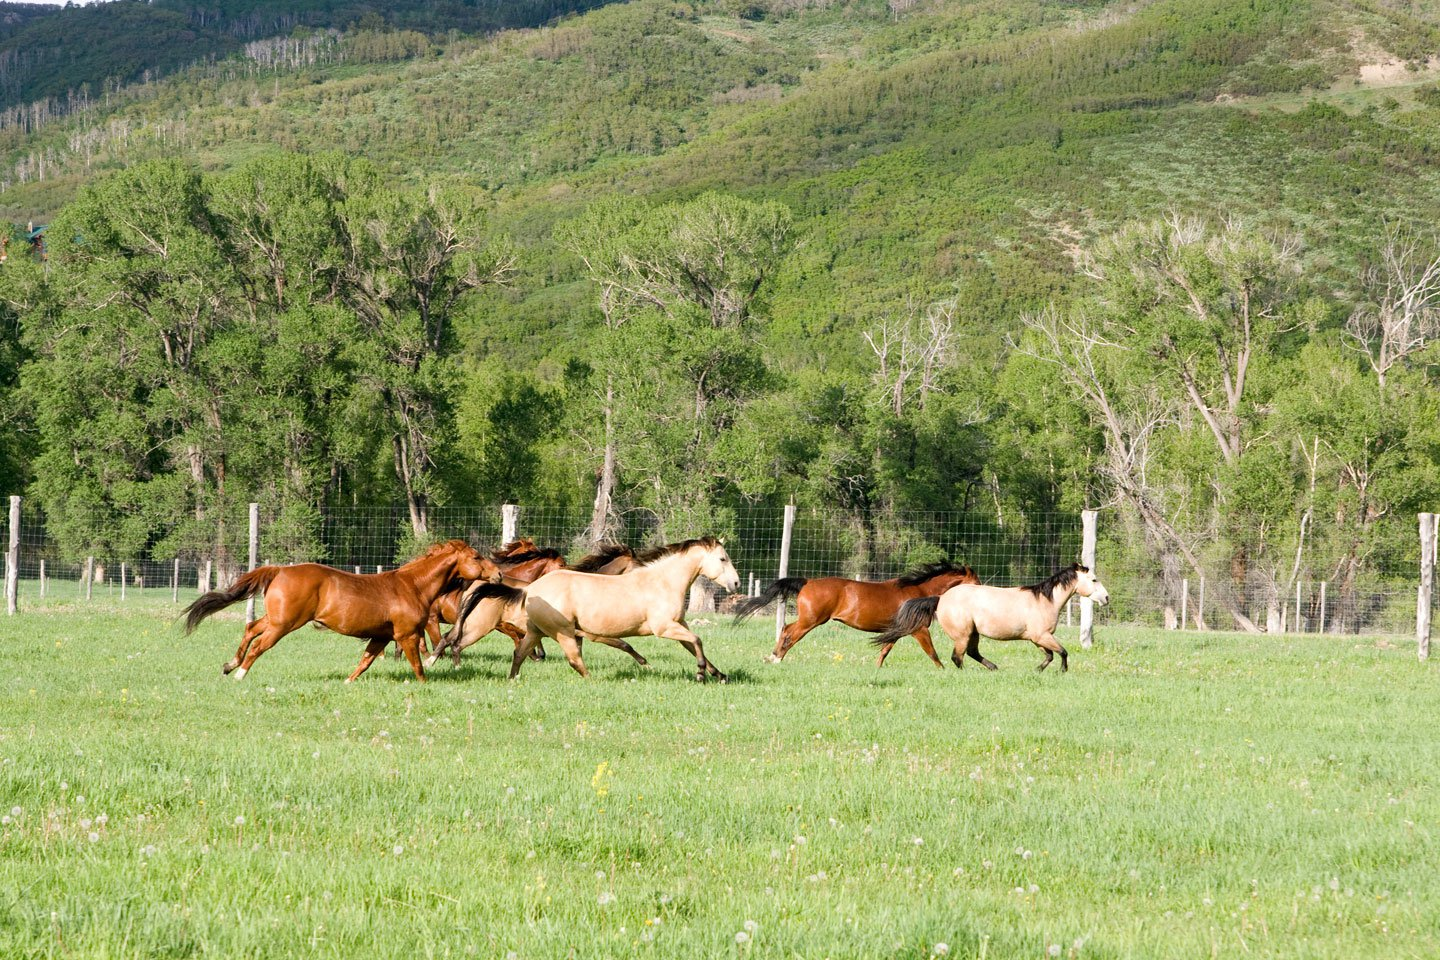 From weanlings to finished horses, the Kurtz Ranch has a great selection of ranch, trail, rope, and show horses for sale.